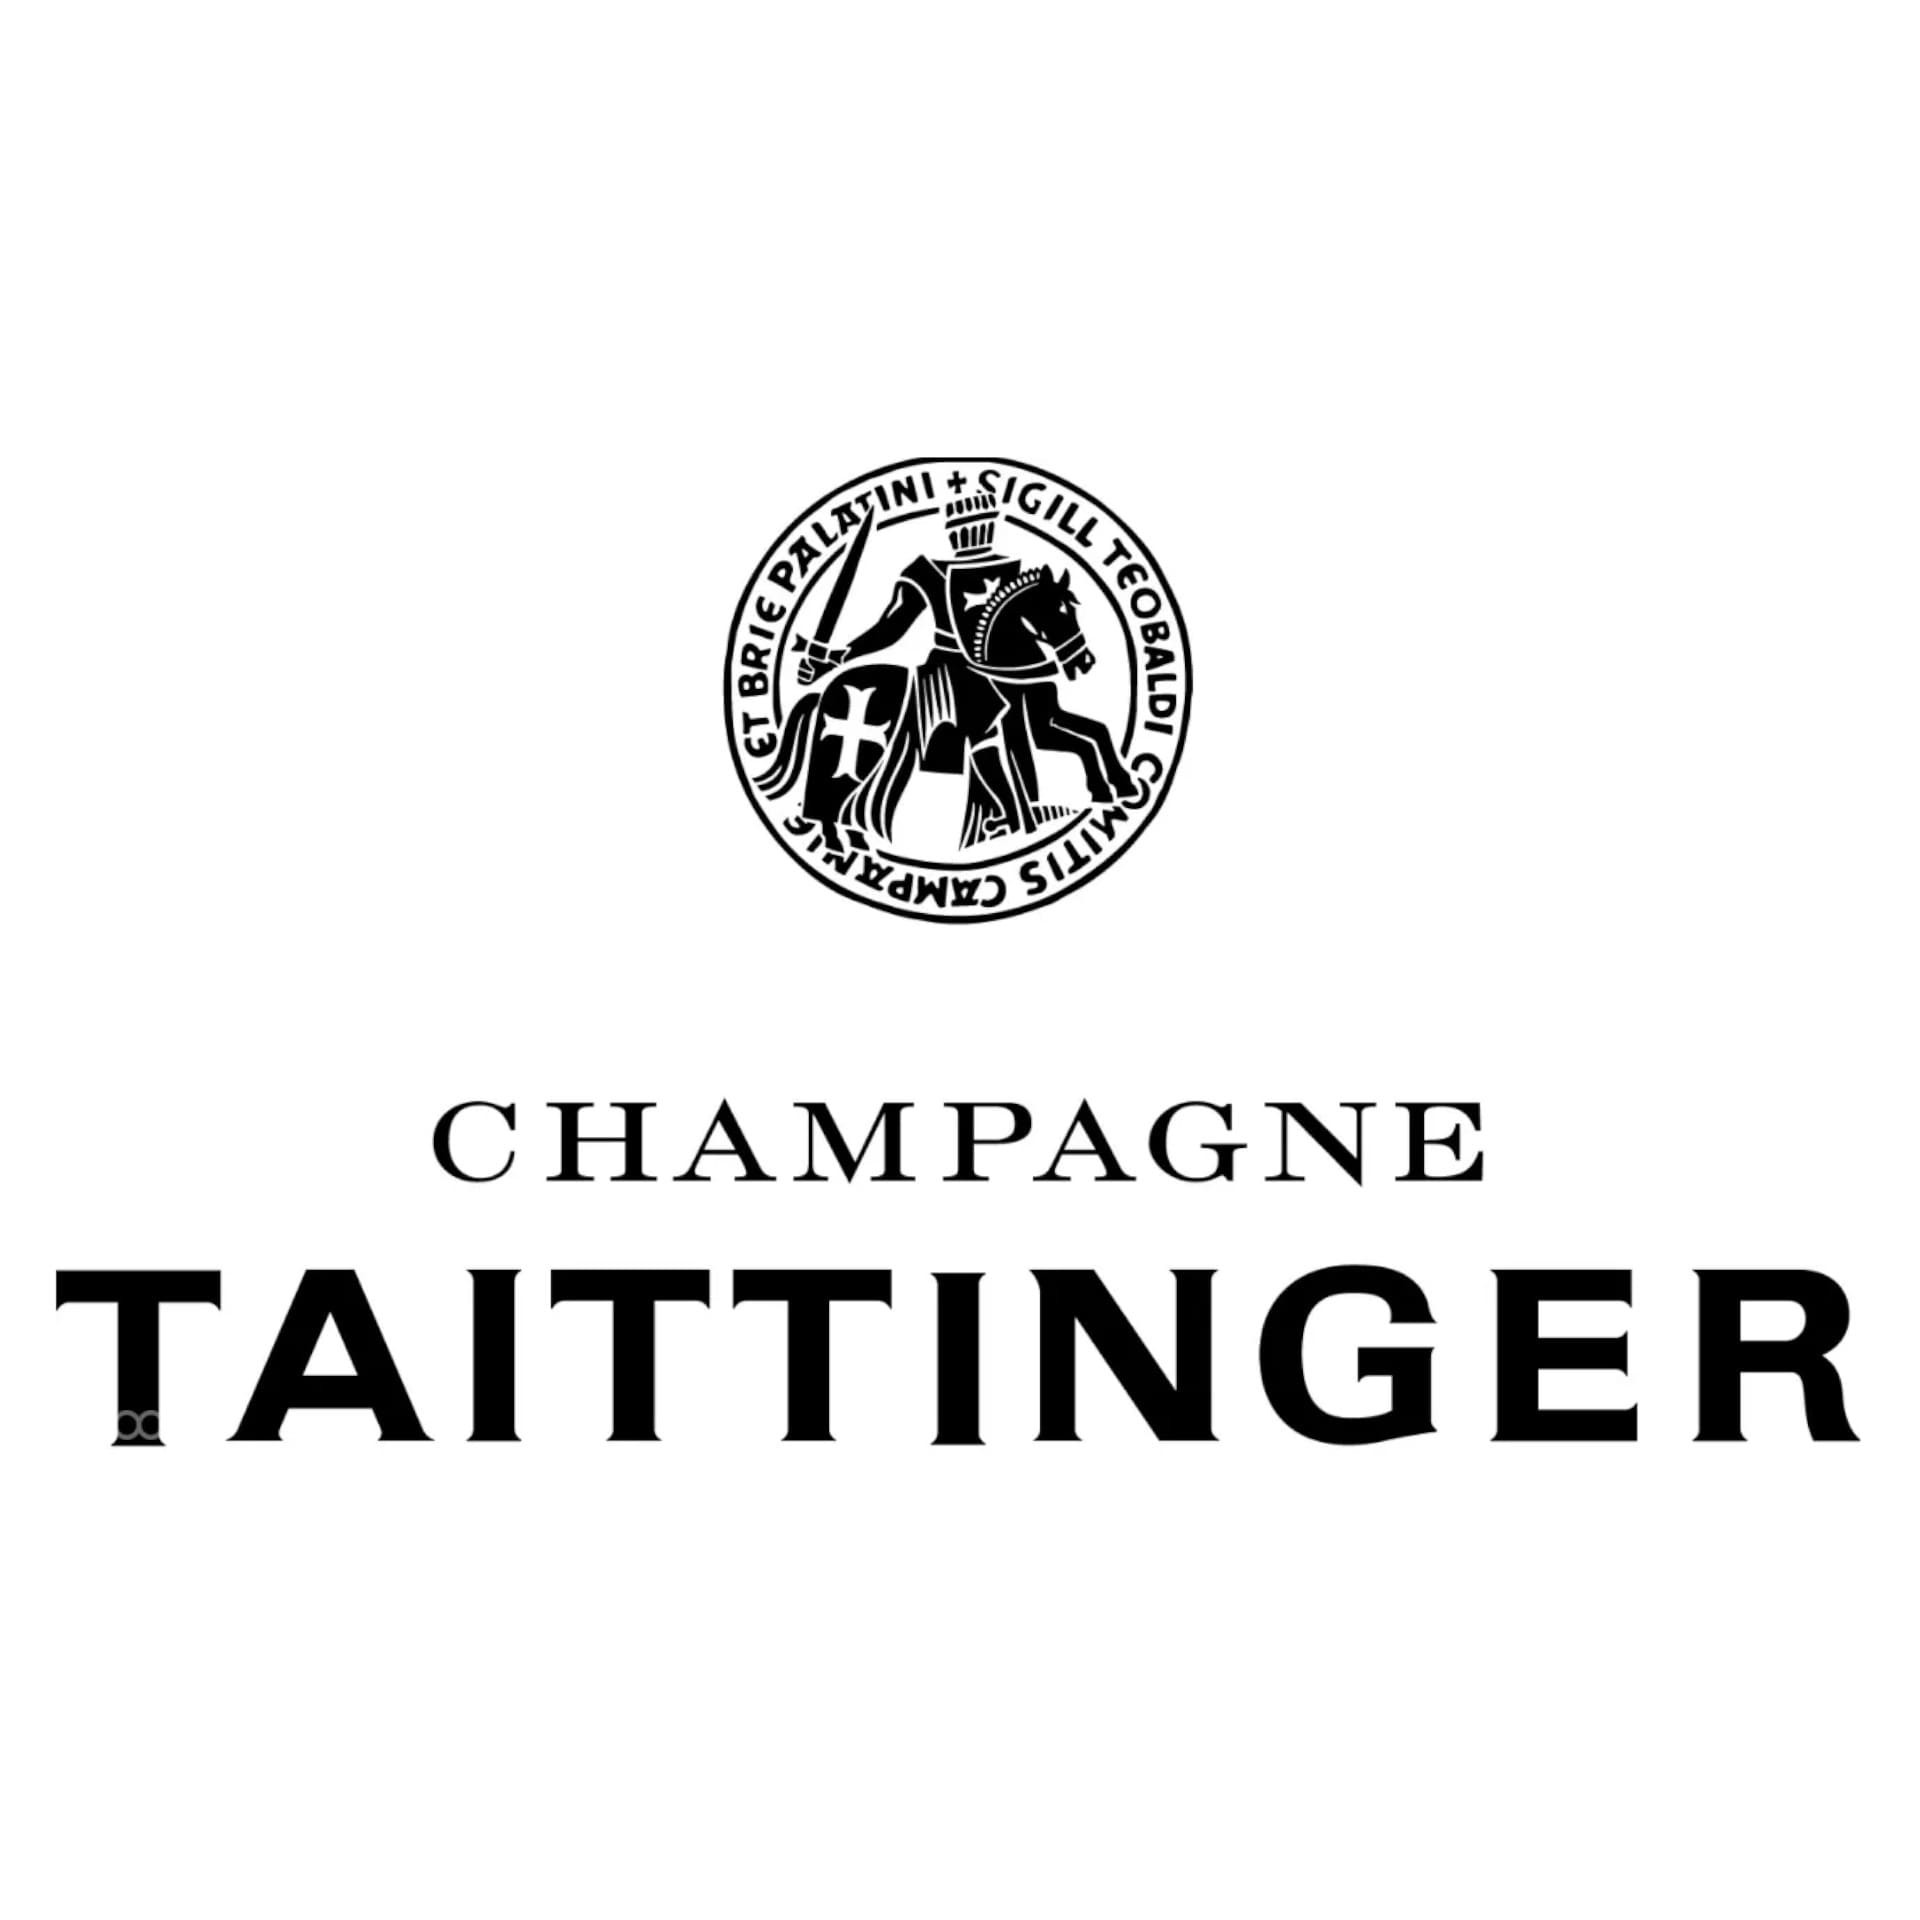 Maison Tattinger